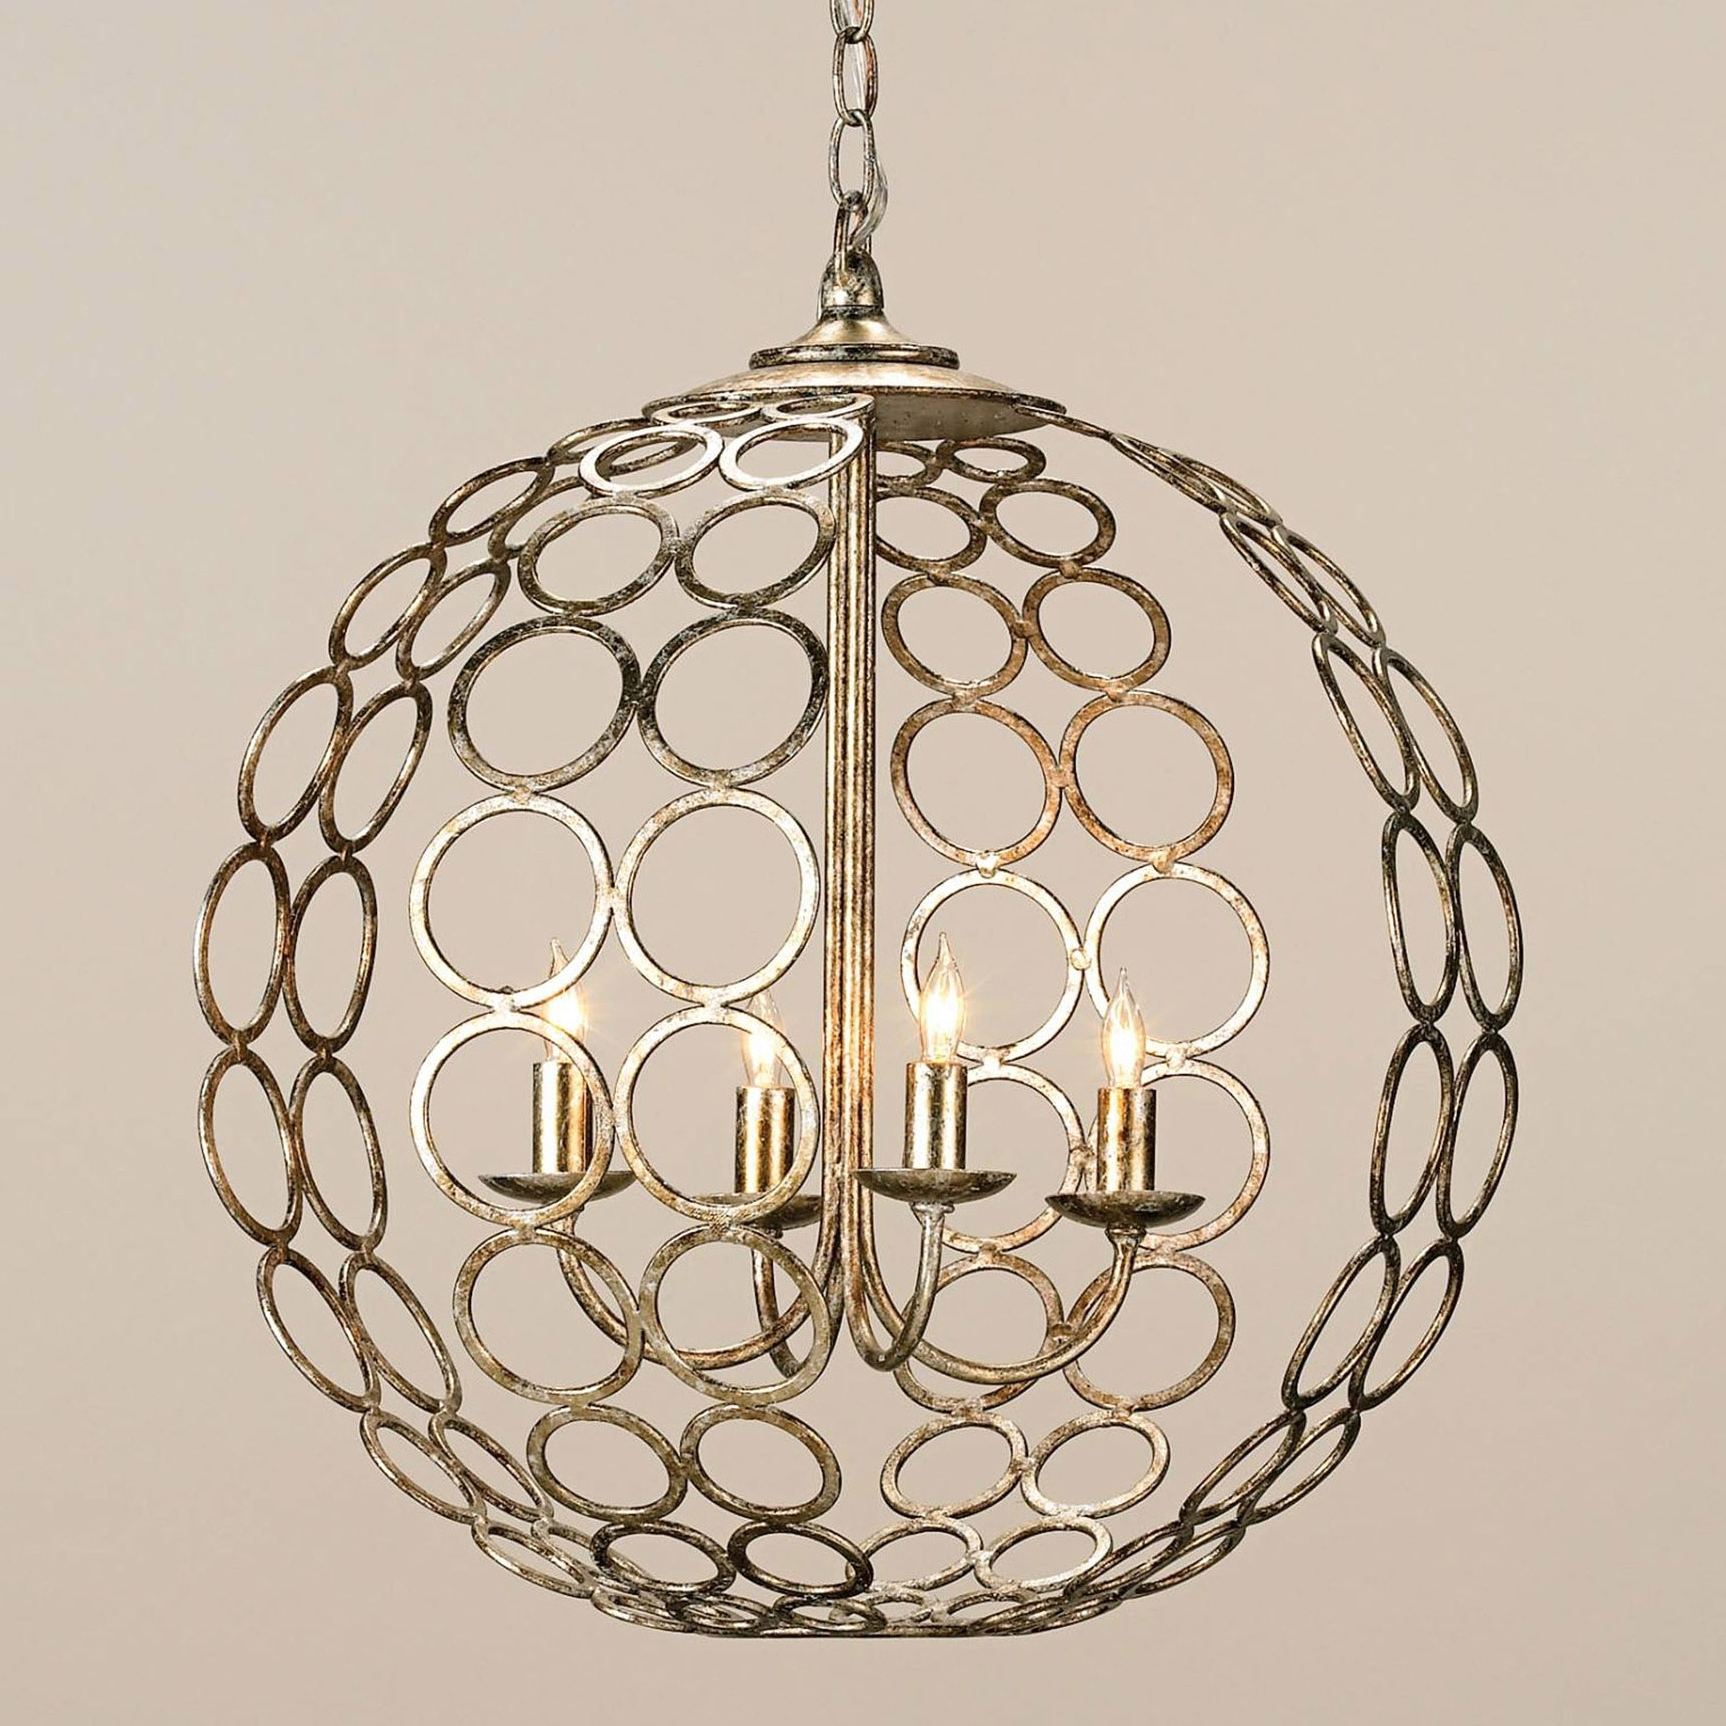 Most Up To Date And Company 9961 Tartufo Orb Chandelier Inside Orb Chandeliers (View 10 of 15)